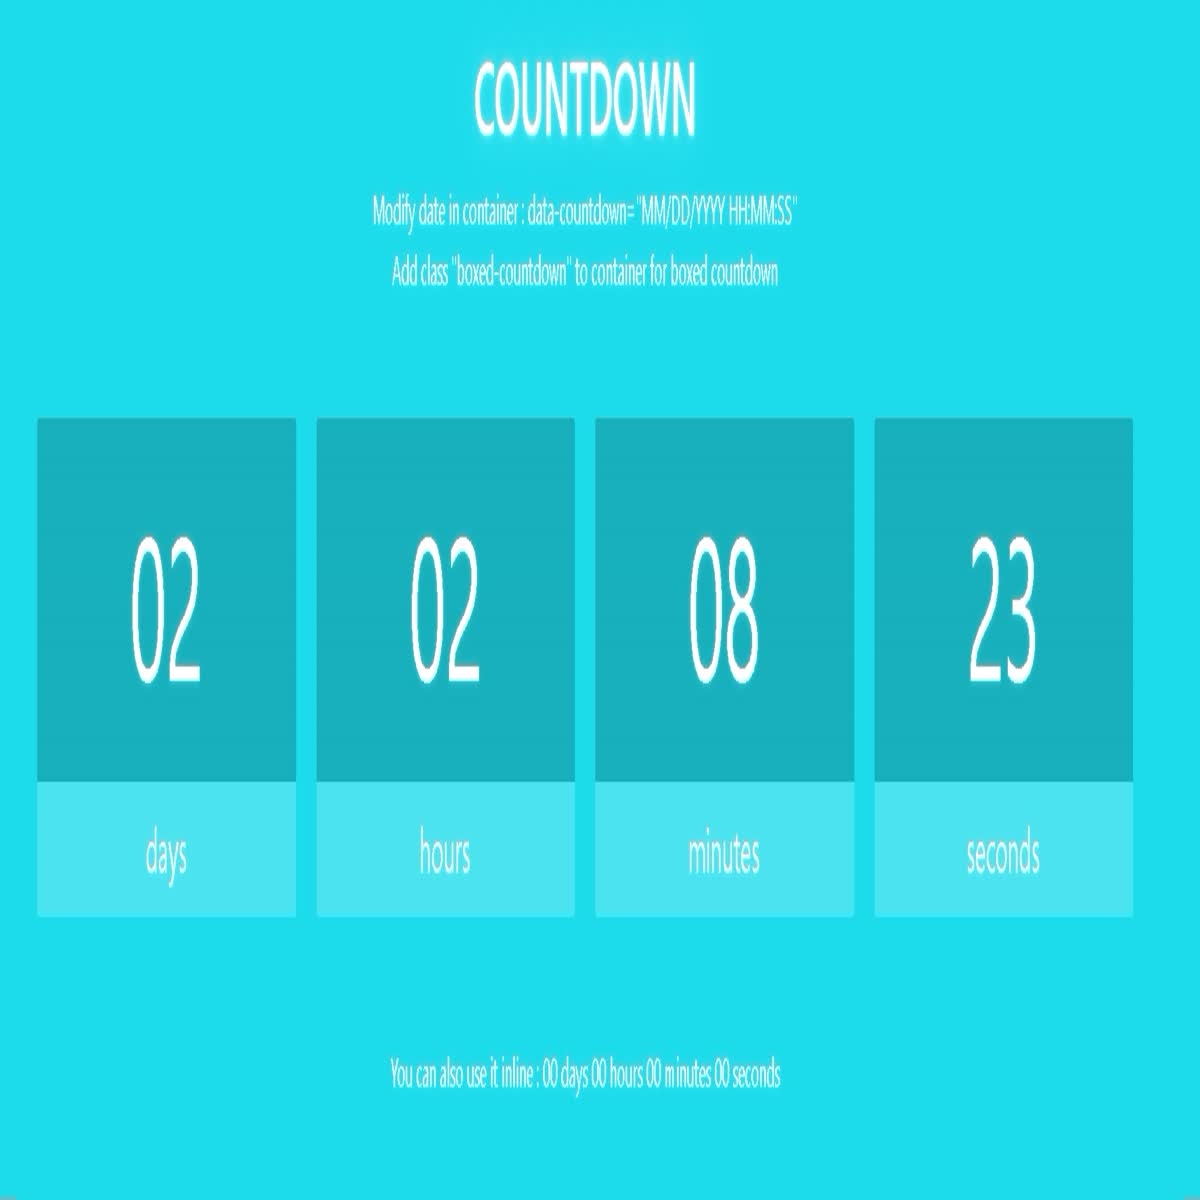 A completely simple countdown timer. Used in the image and in the code.